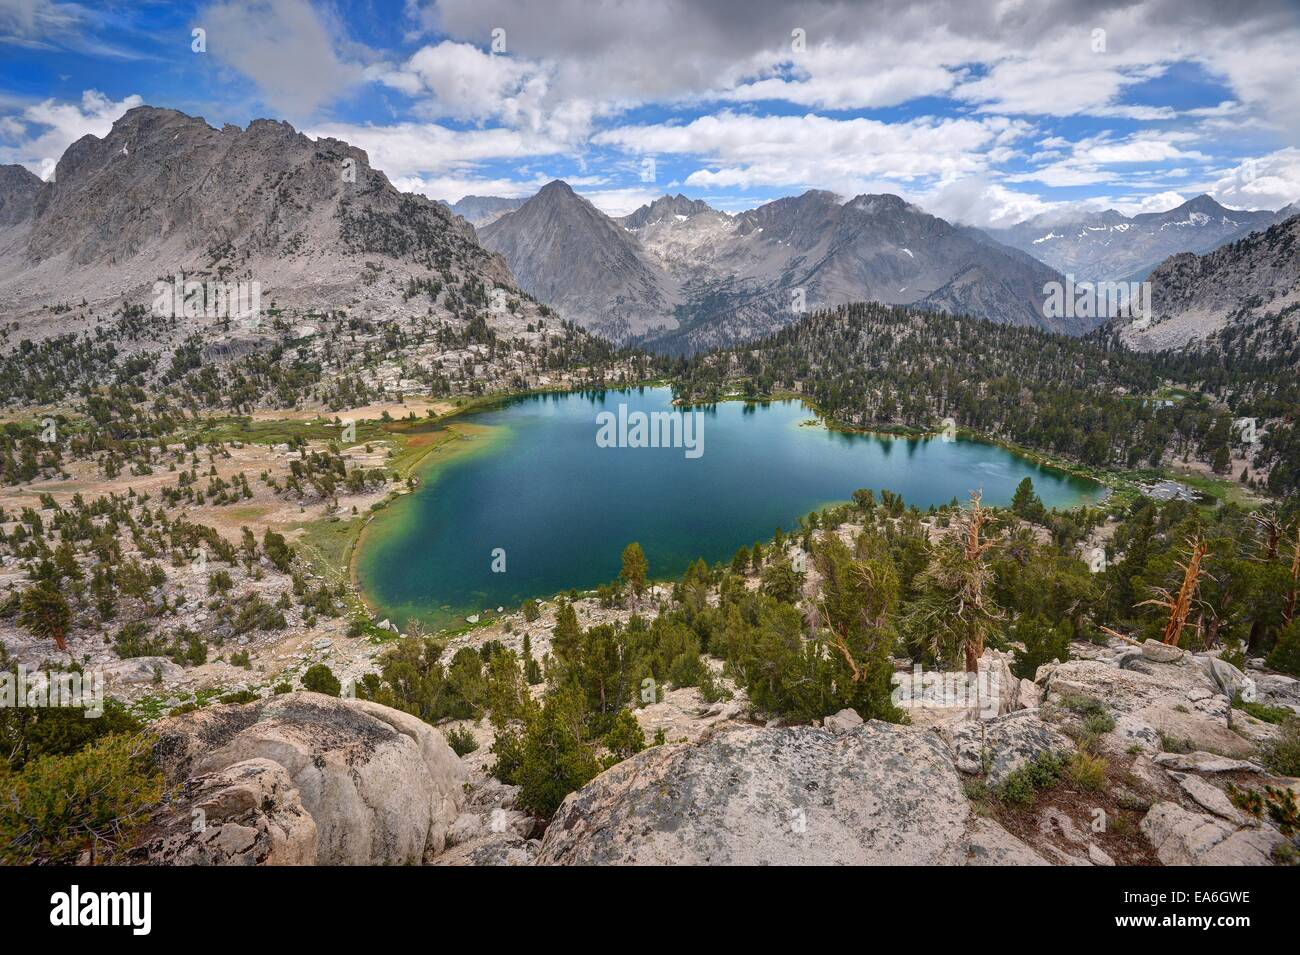 USA, California, Ansel Adams Wilderness Area, Inyo National Forest, Spectacular Bullfrog Lake - Stock Image